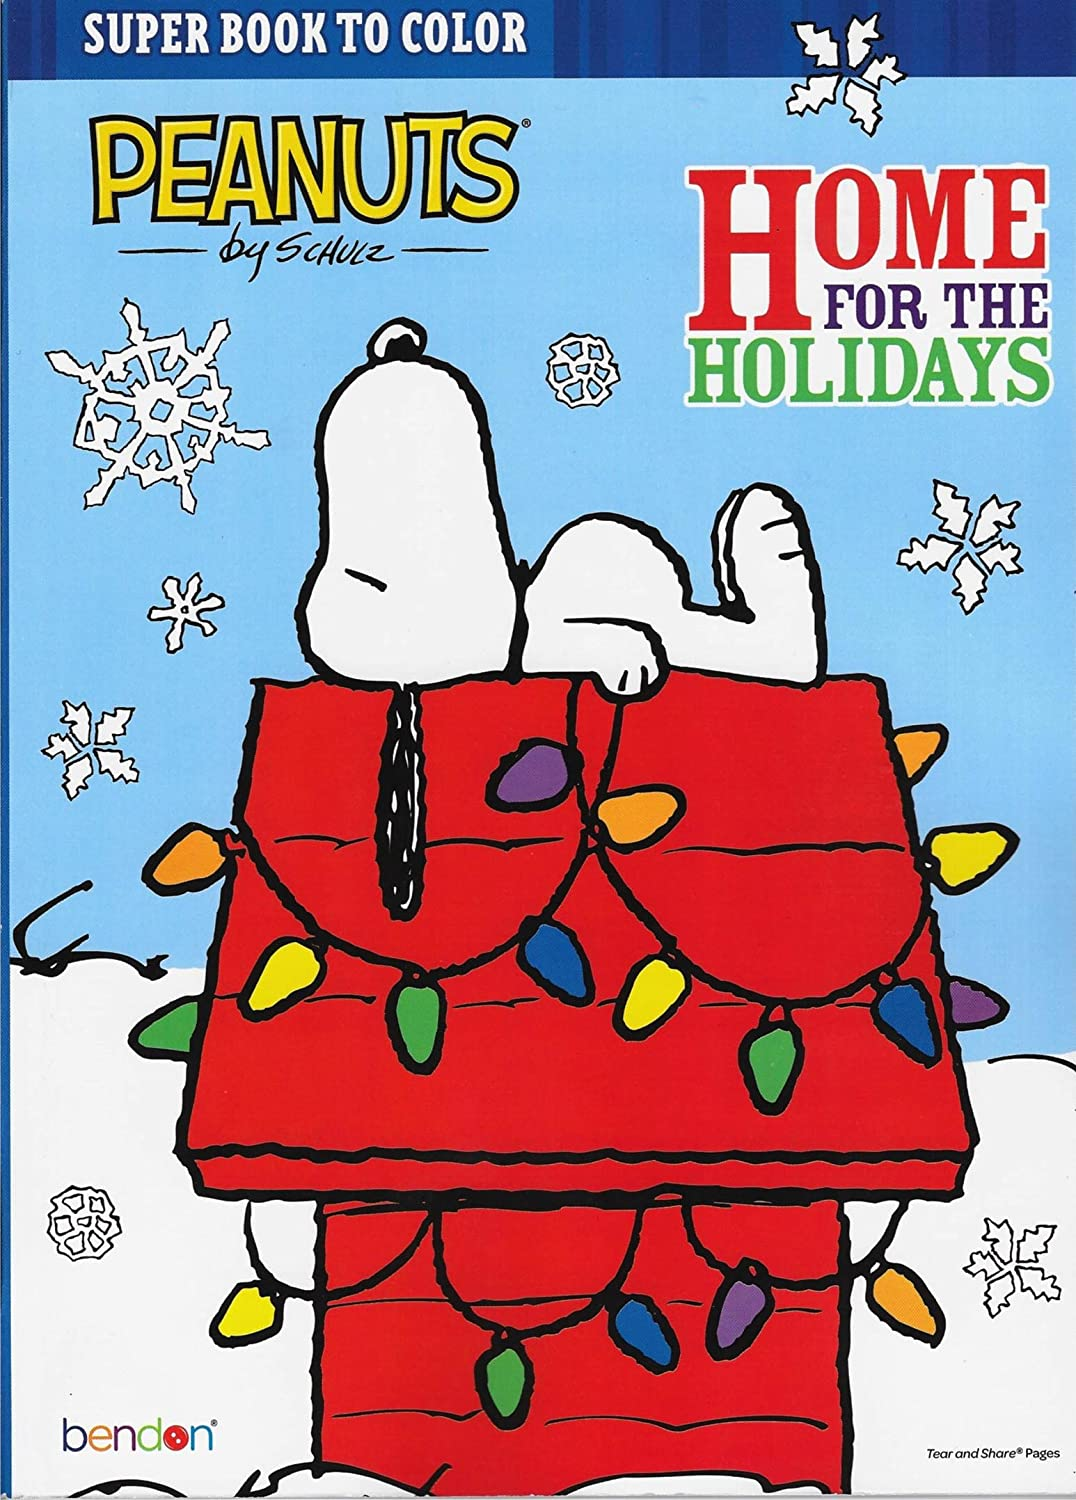 amazoncom peanuts home for the holidays christmas coloring book toys games - Peanuts Coloring Book